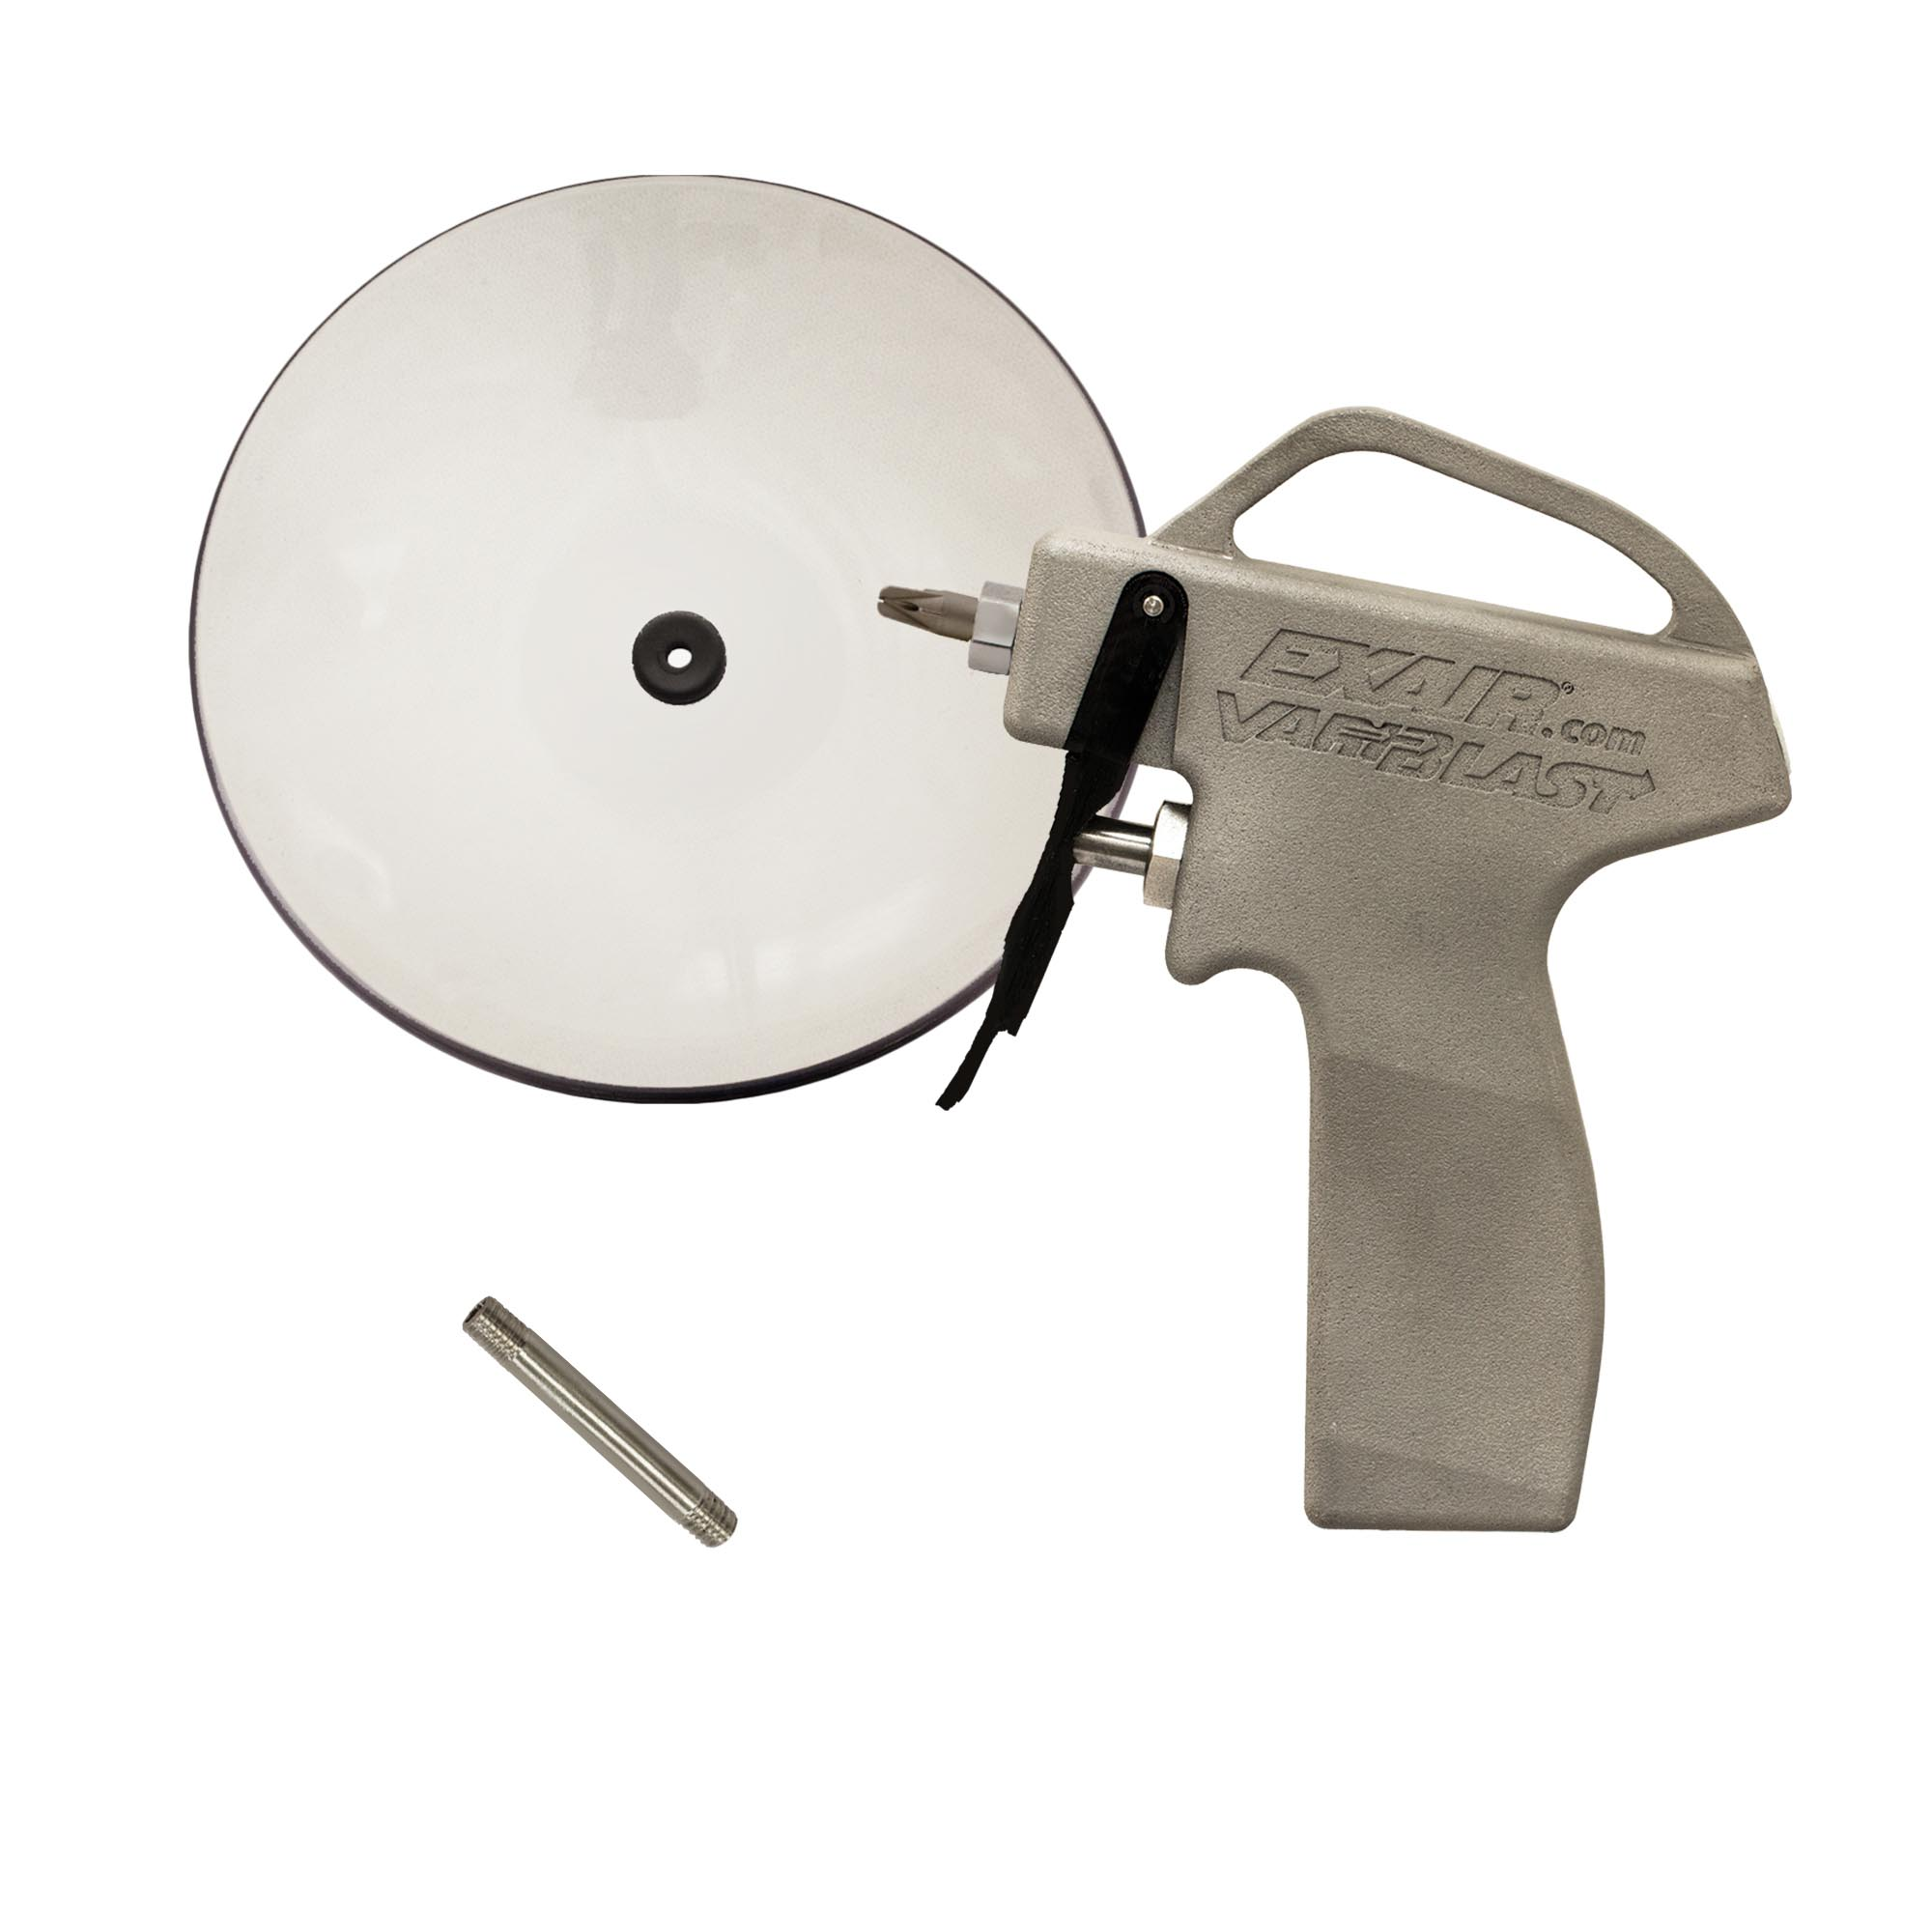 Model 1698SS-CS VariBlast Compact Safety Air Gun with Stainless Steel Nano Super Air Nozzle and Chip Shield